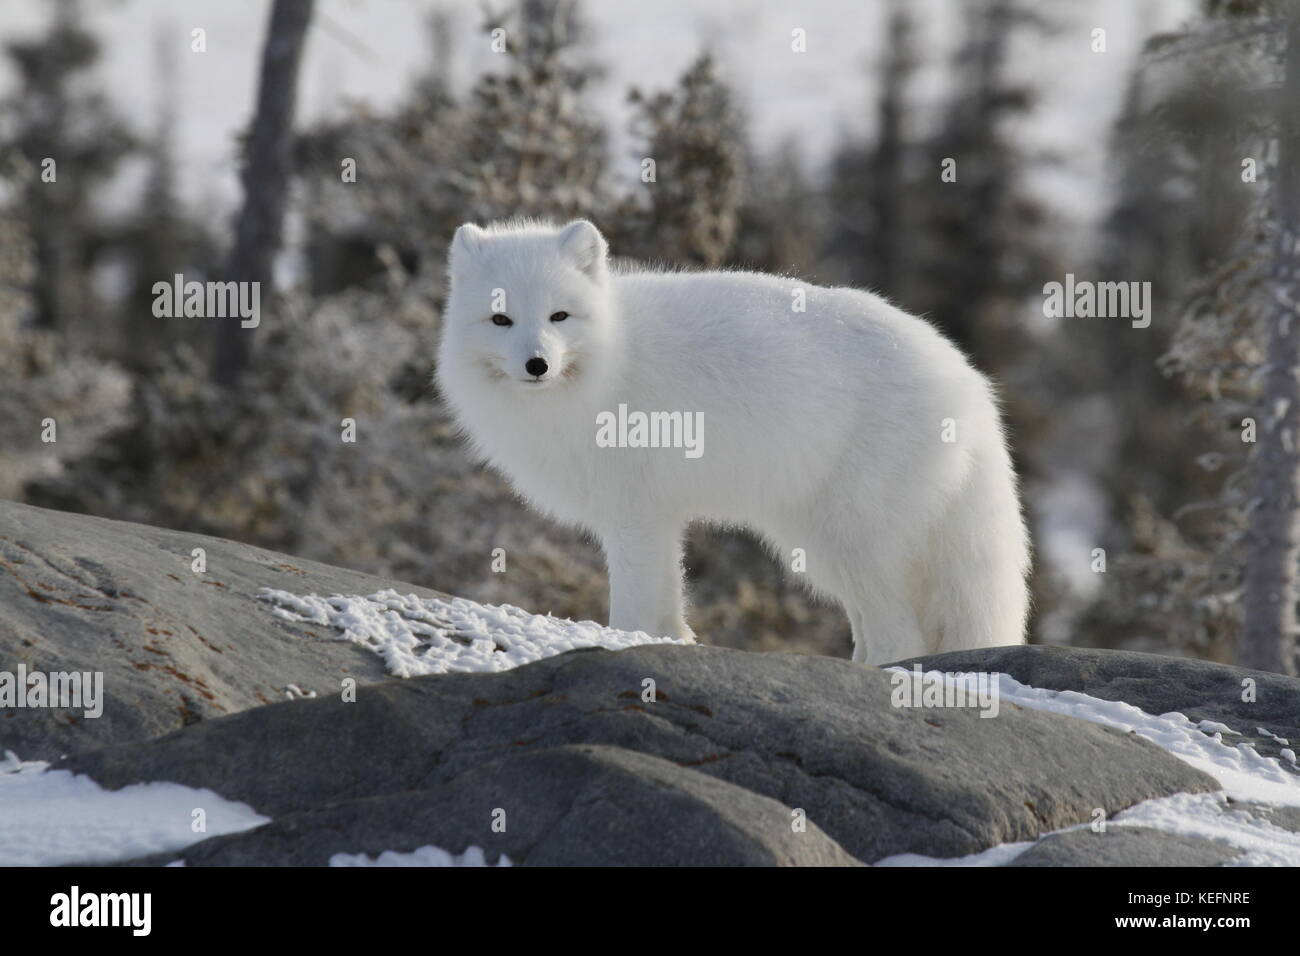 Arctic fox (Vulpes Lagopus) in white winter coat, squinting while standing on a large rock - Stock Image